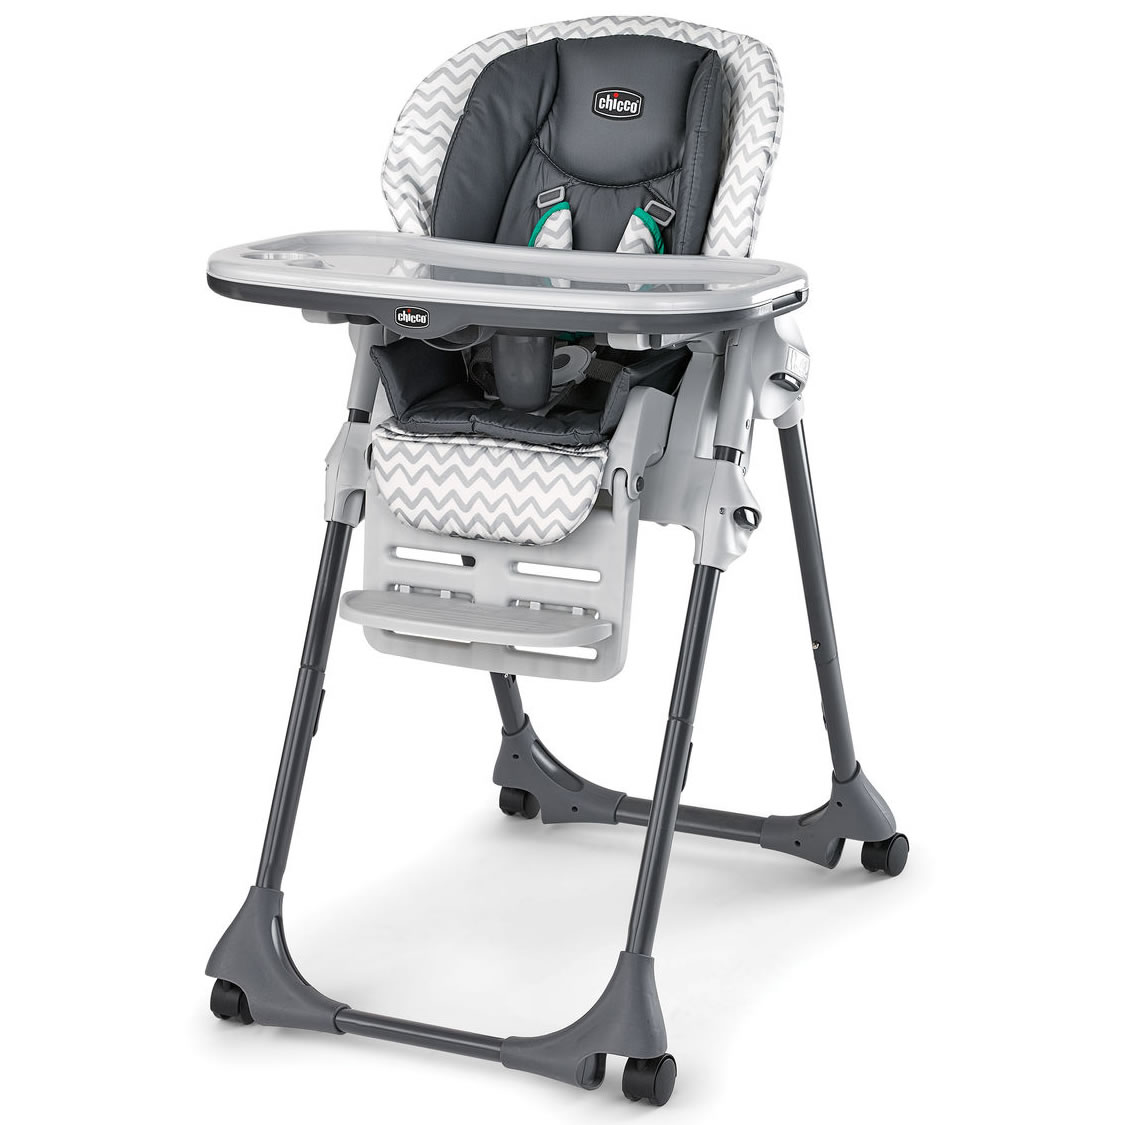 Chicco Polly Double Pad Highchair Empire moreover 08079072190070 additionally Chicco Polly Double Pad Highchair Empire also  on 08079072190070